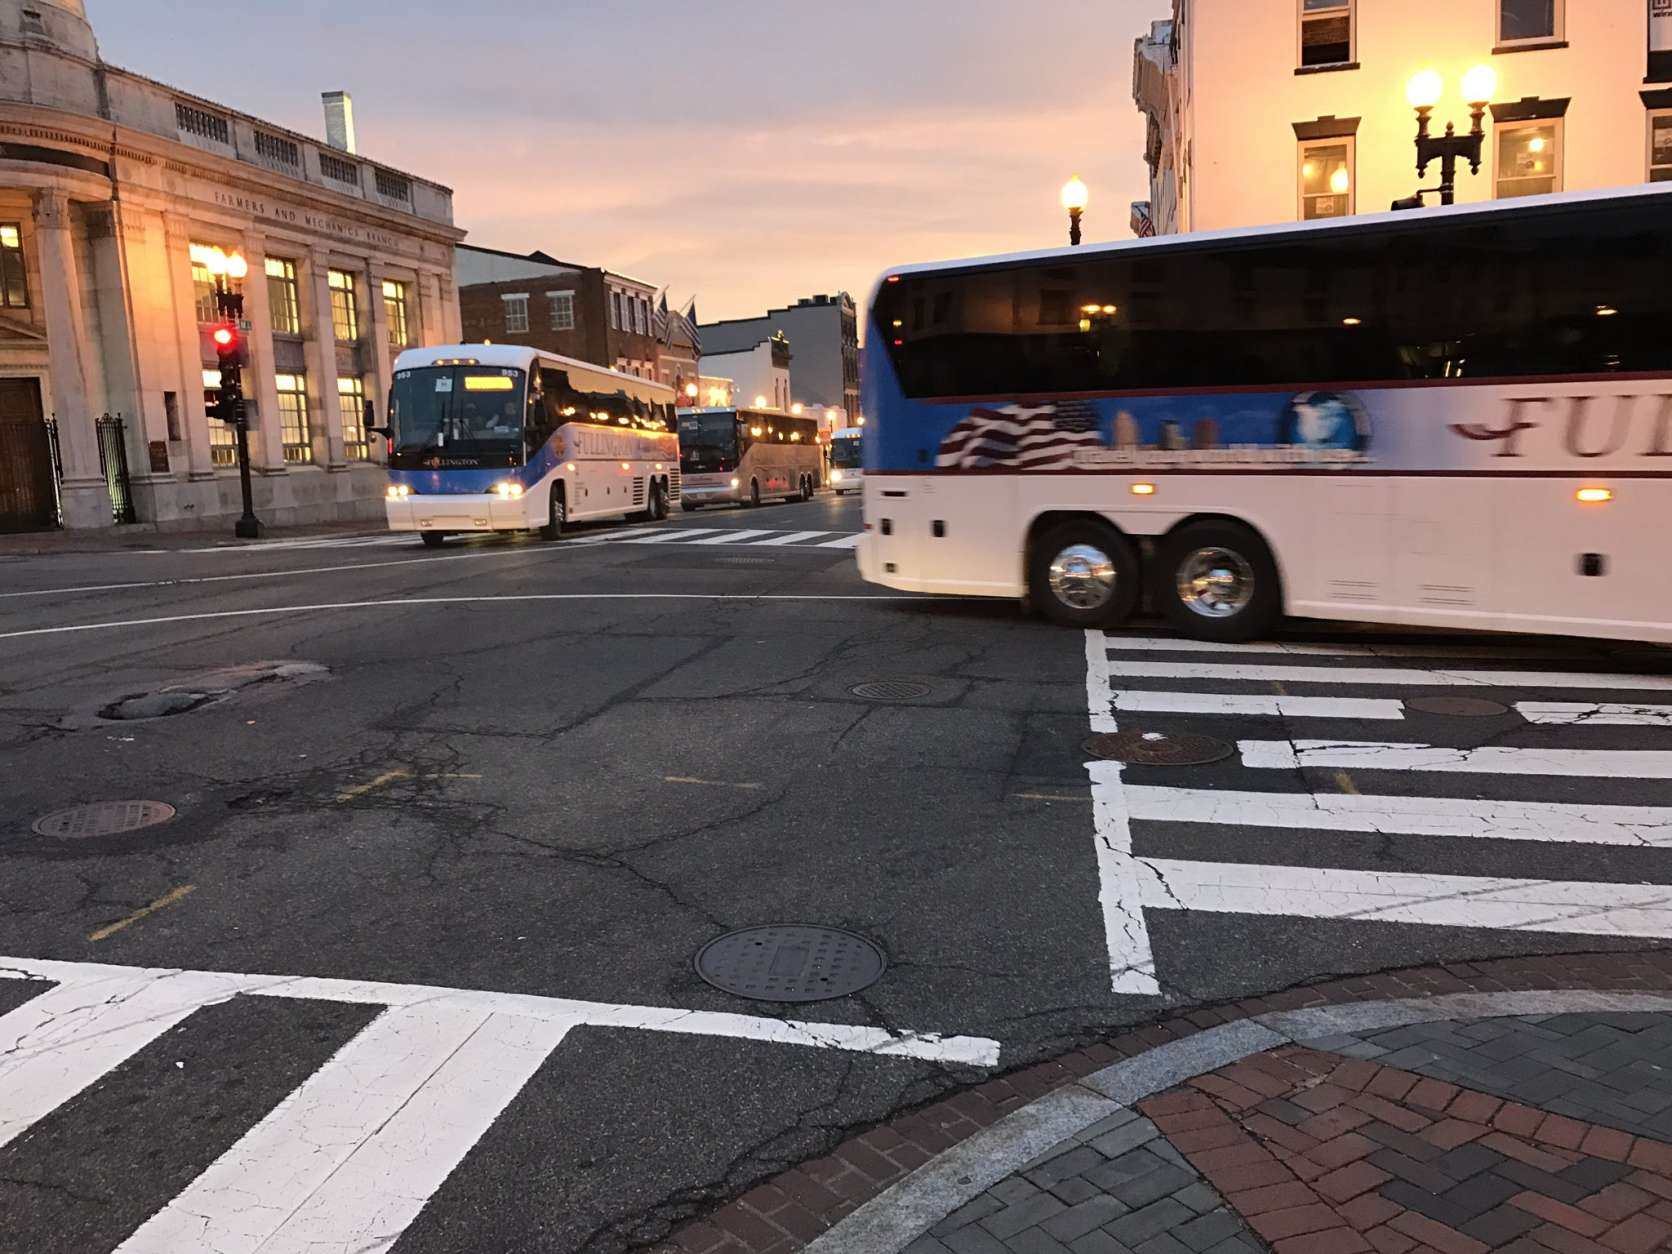 Escorted buses snake through Georgetown to get to downtown D.C. for the inauguration. (WTOP/Neal Augenstein)